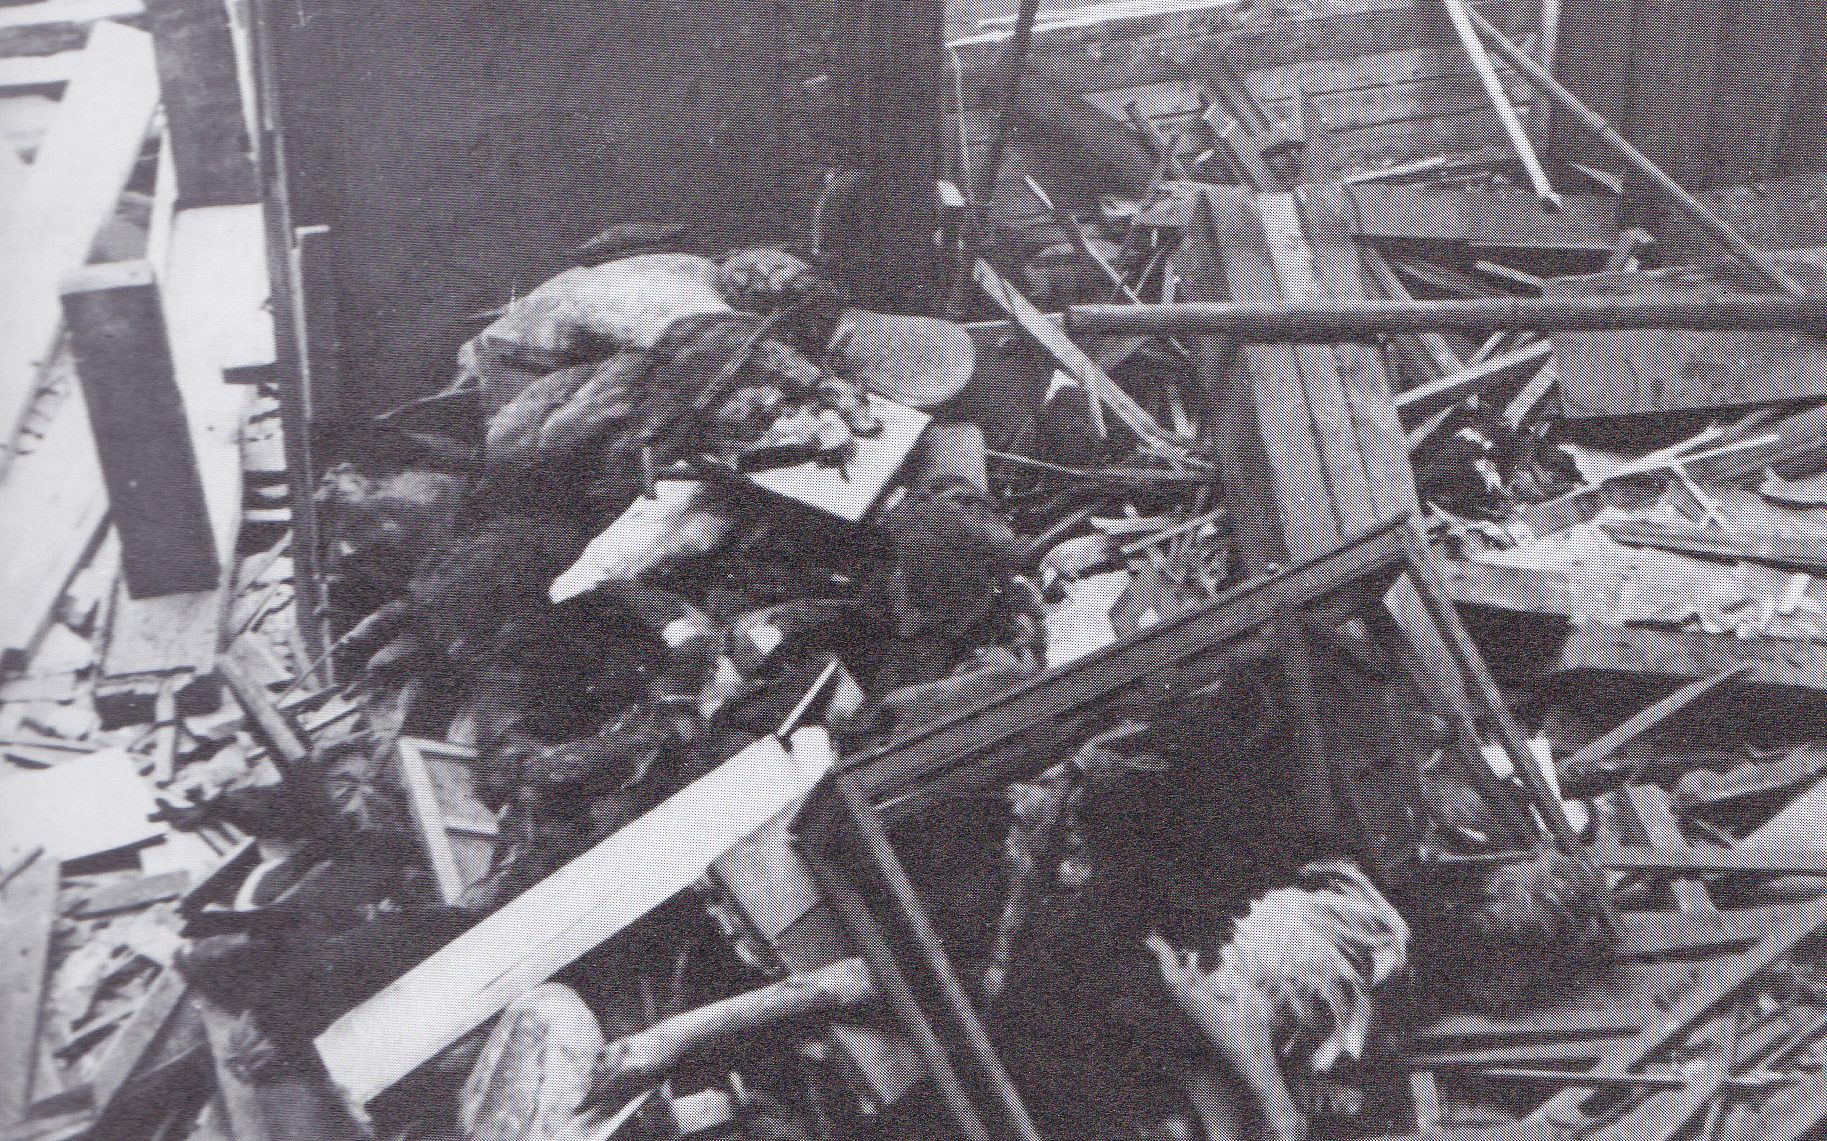 A black and white photograph showing damage and debris piled on the floor.